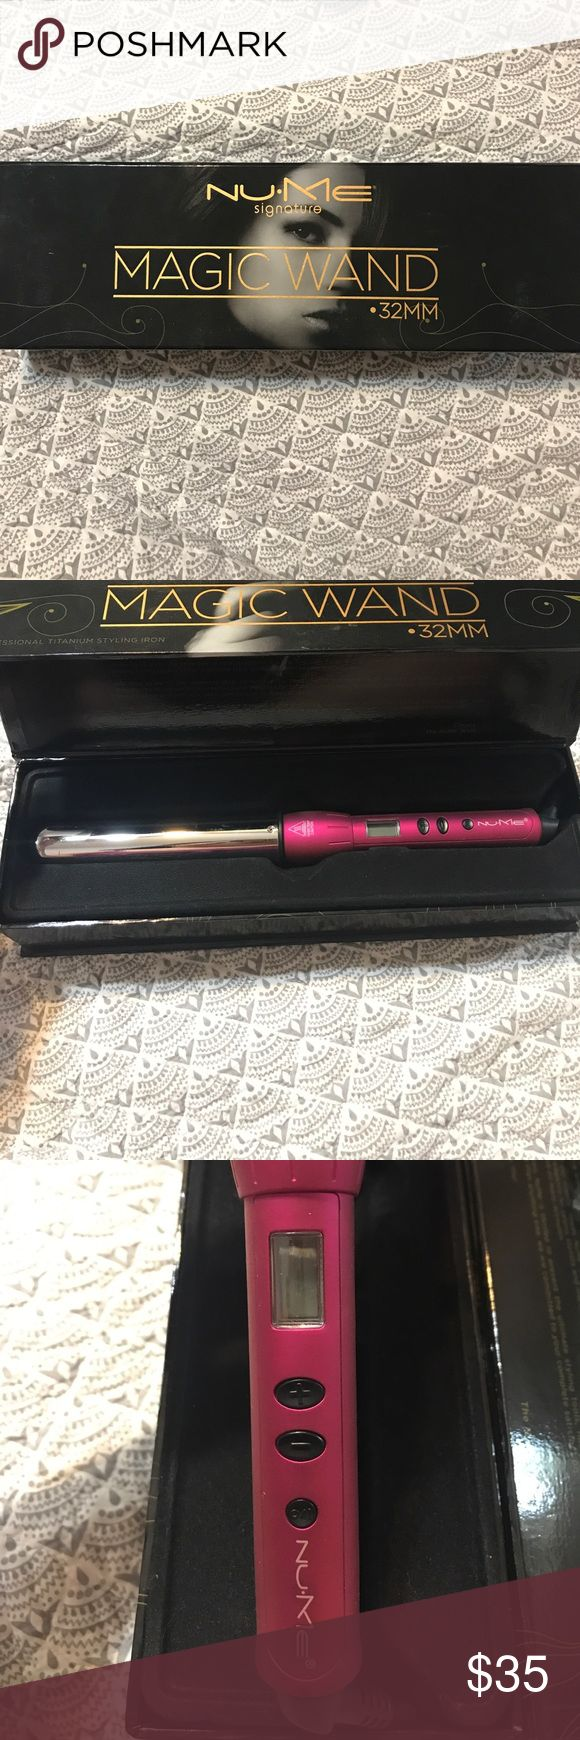 NuMe curling wand. NuMe 35mm magic wand, titanium curling wand. Hot pink. Didgital display, heats to 450 degrees. New without tags. NuMe Accessories Hair Accessories